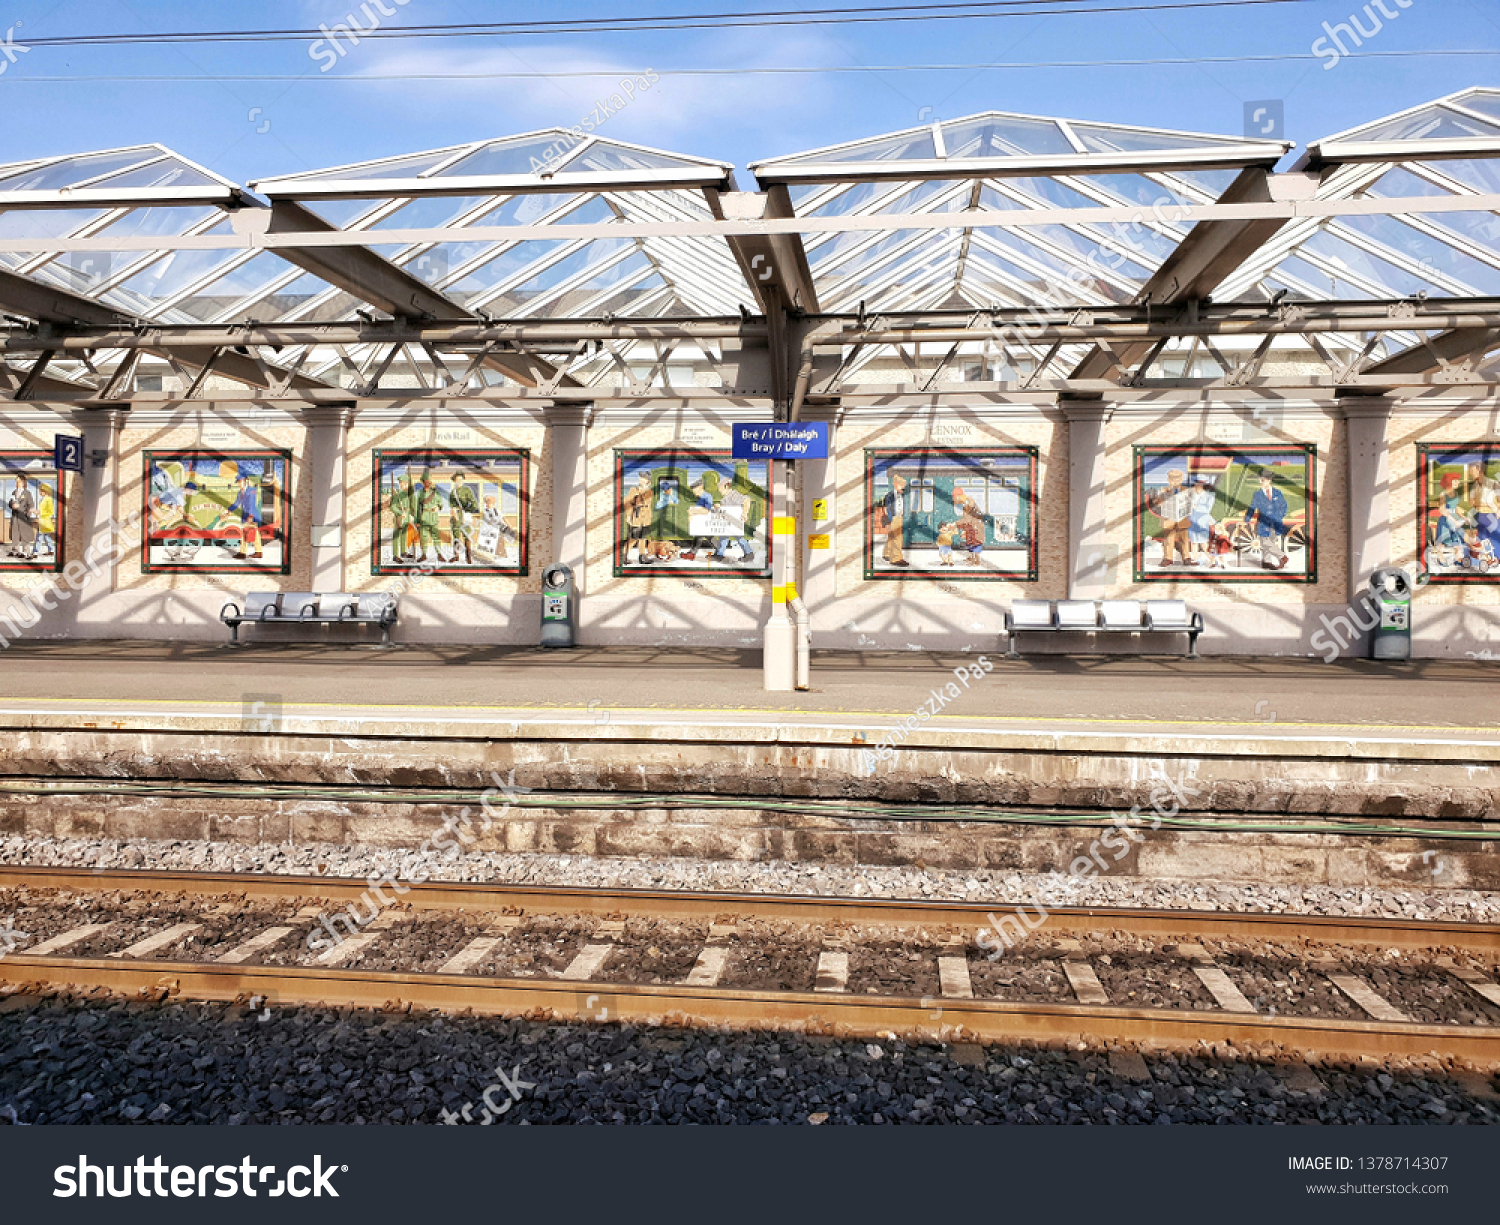 BRAY, CO. WICKLOW, IRELAND - APRIL 21, 2019: Empty platform at the Bray (Daly) train station on sunny day.  Historical mosaics on the wall. Glass roof gives shadows. A view from the opposite platform.